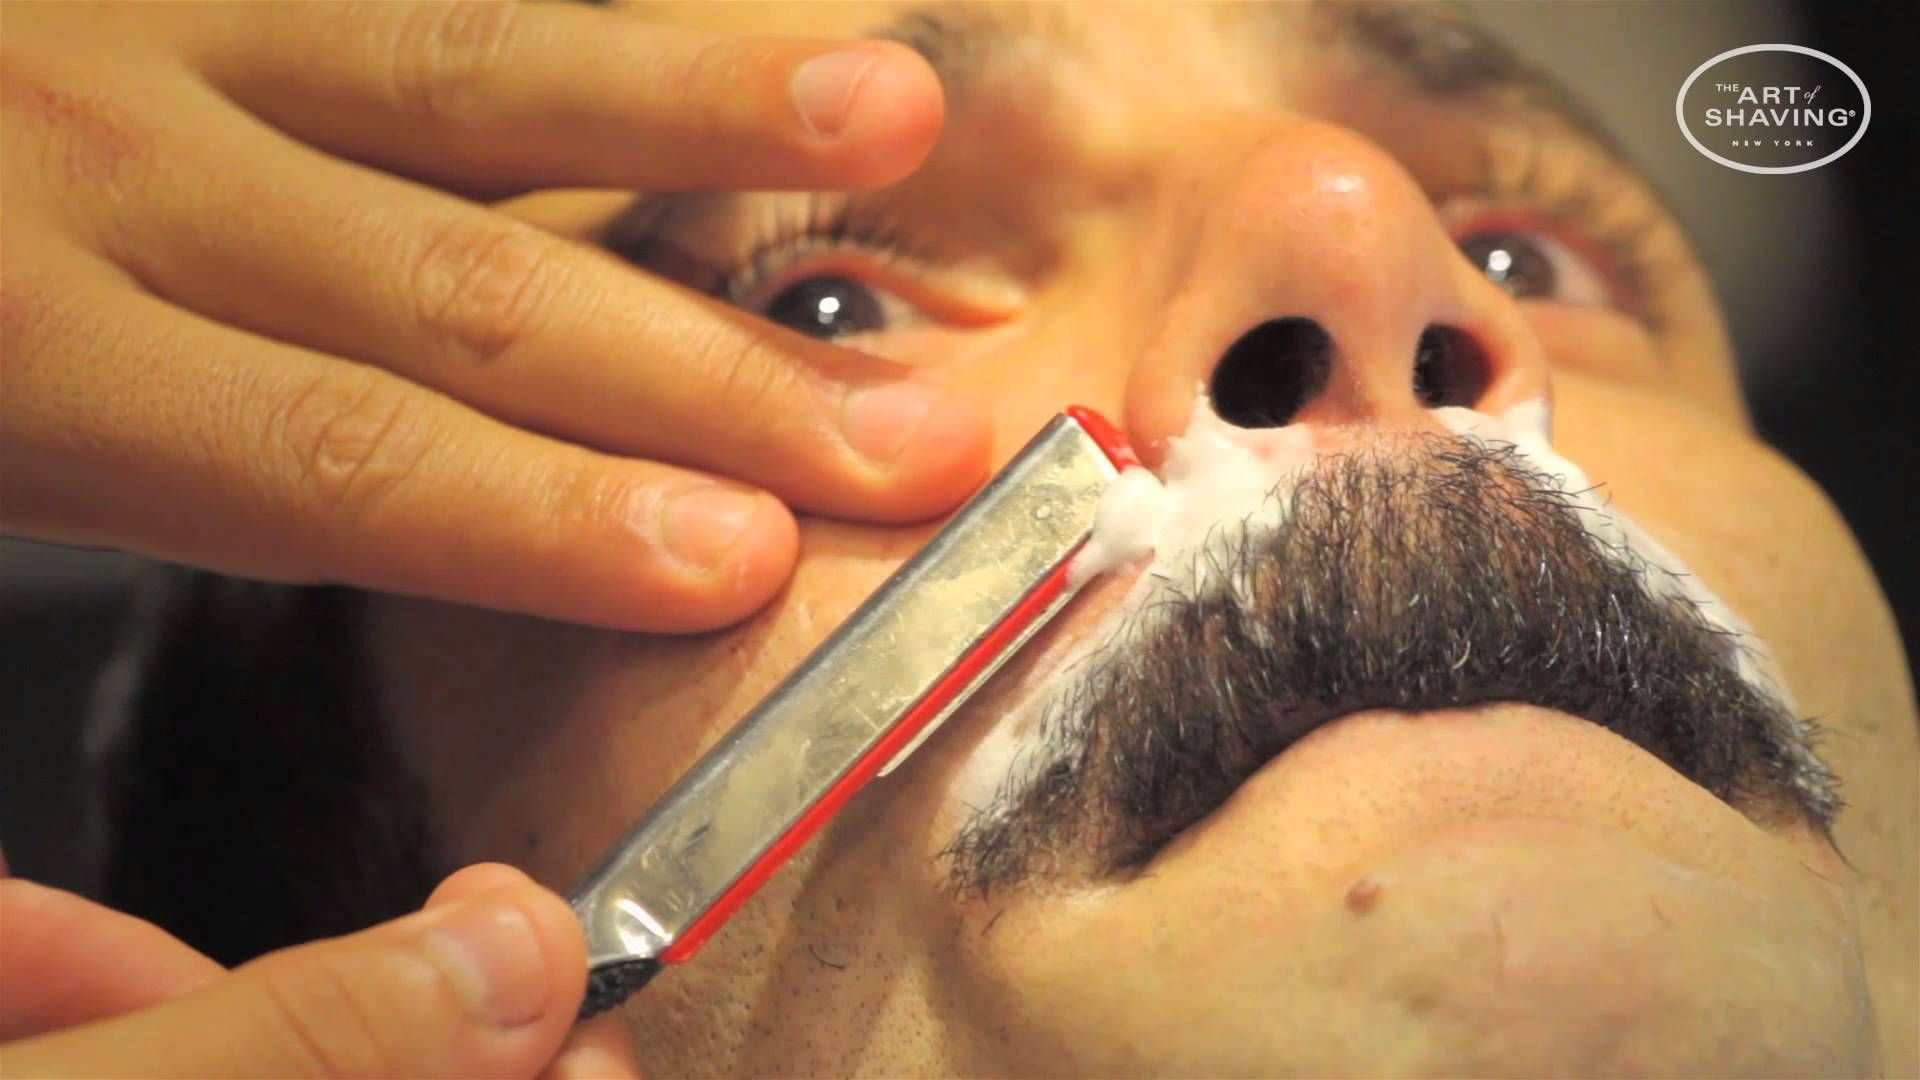 How to get the Chevron Mustache Mustache grooming